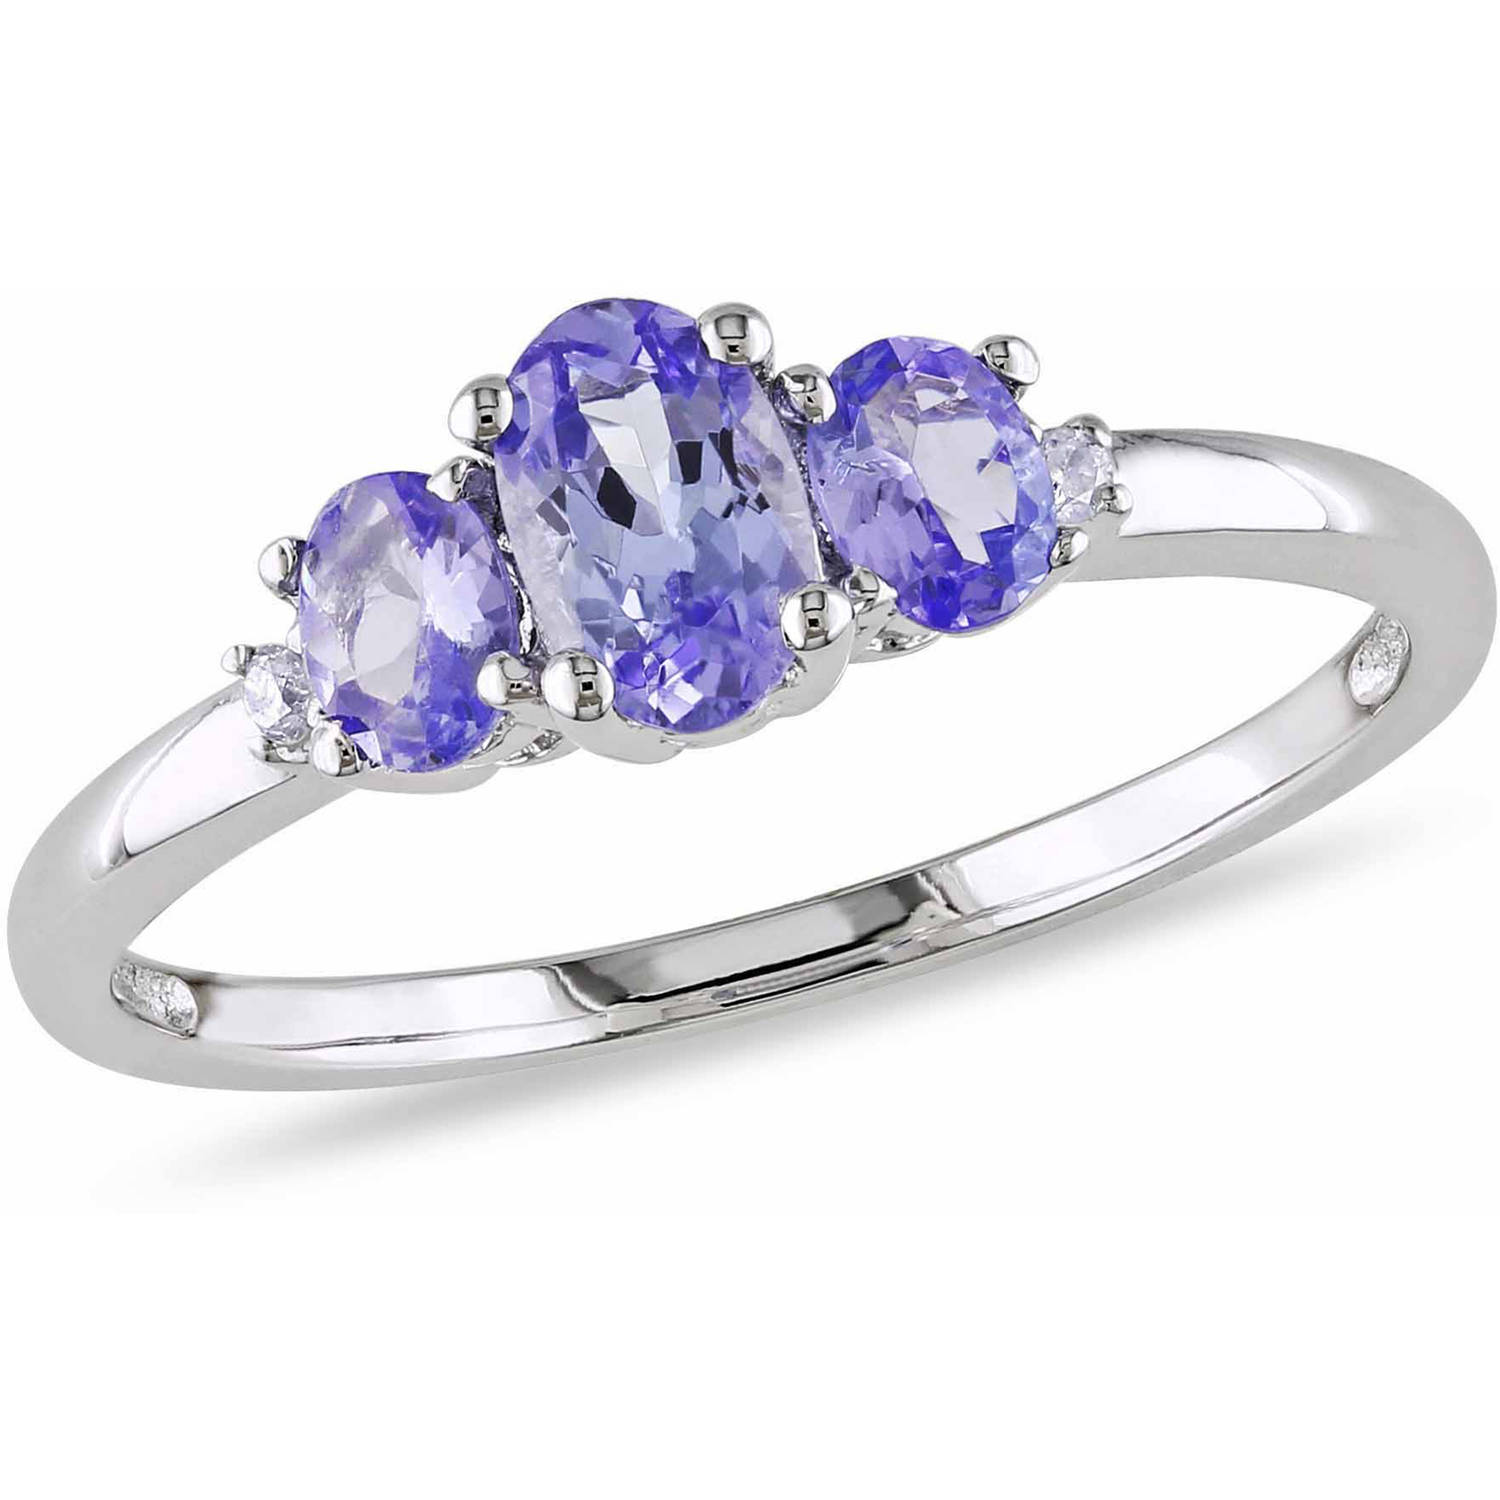 3 4 Carat T.G.W. Oval-Cut Tanzanite and Diamond-Accent 10kt White Gold 3-Stone Ring by Delmar Manufacturing LLC